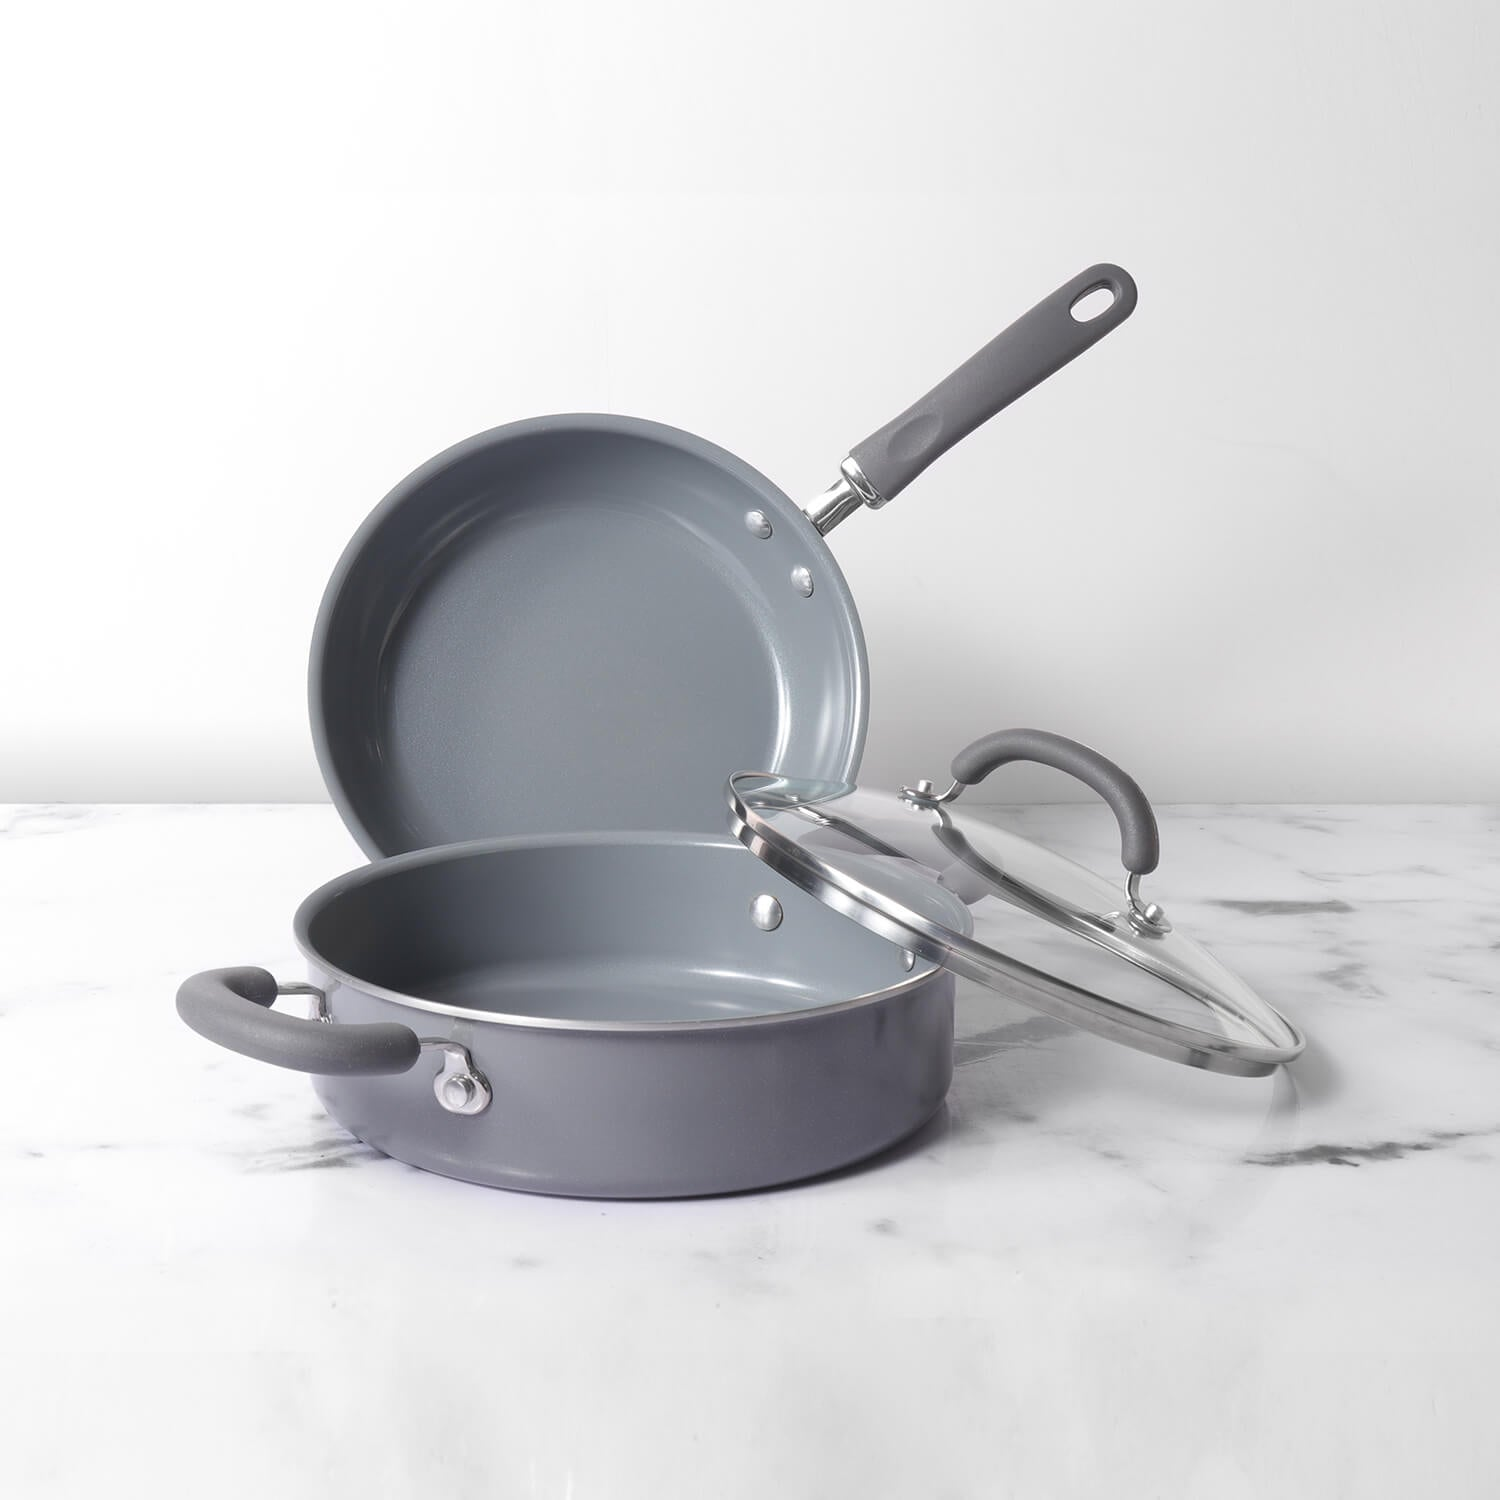 Meyer Anzen 3pcs Set - Open Frypan + Sauteuse with Interchangeable Lid, 24cm - Pots and Pans